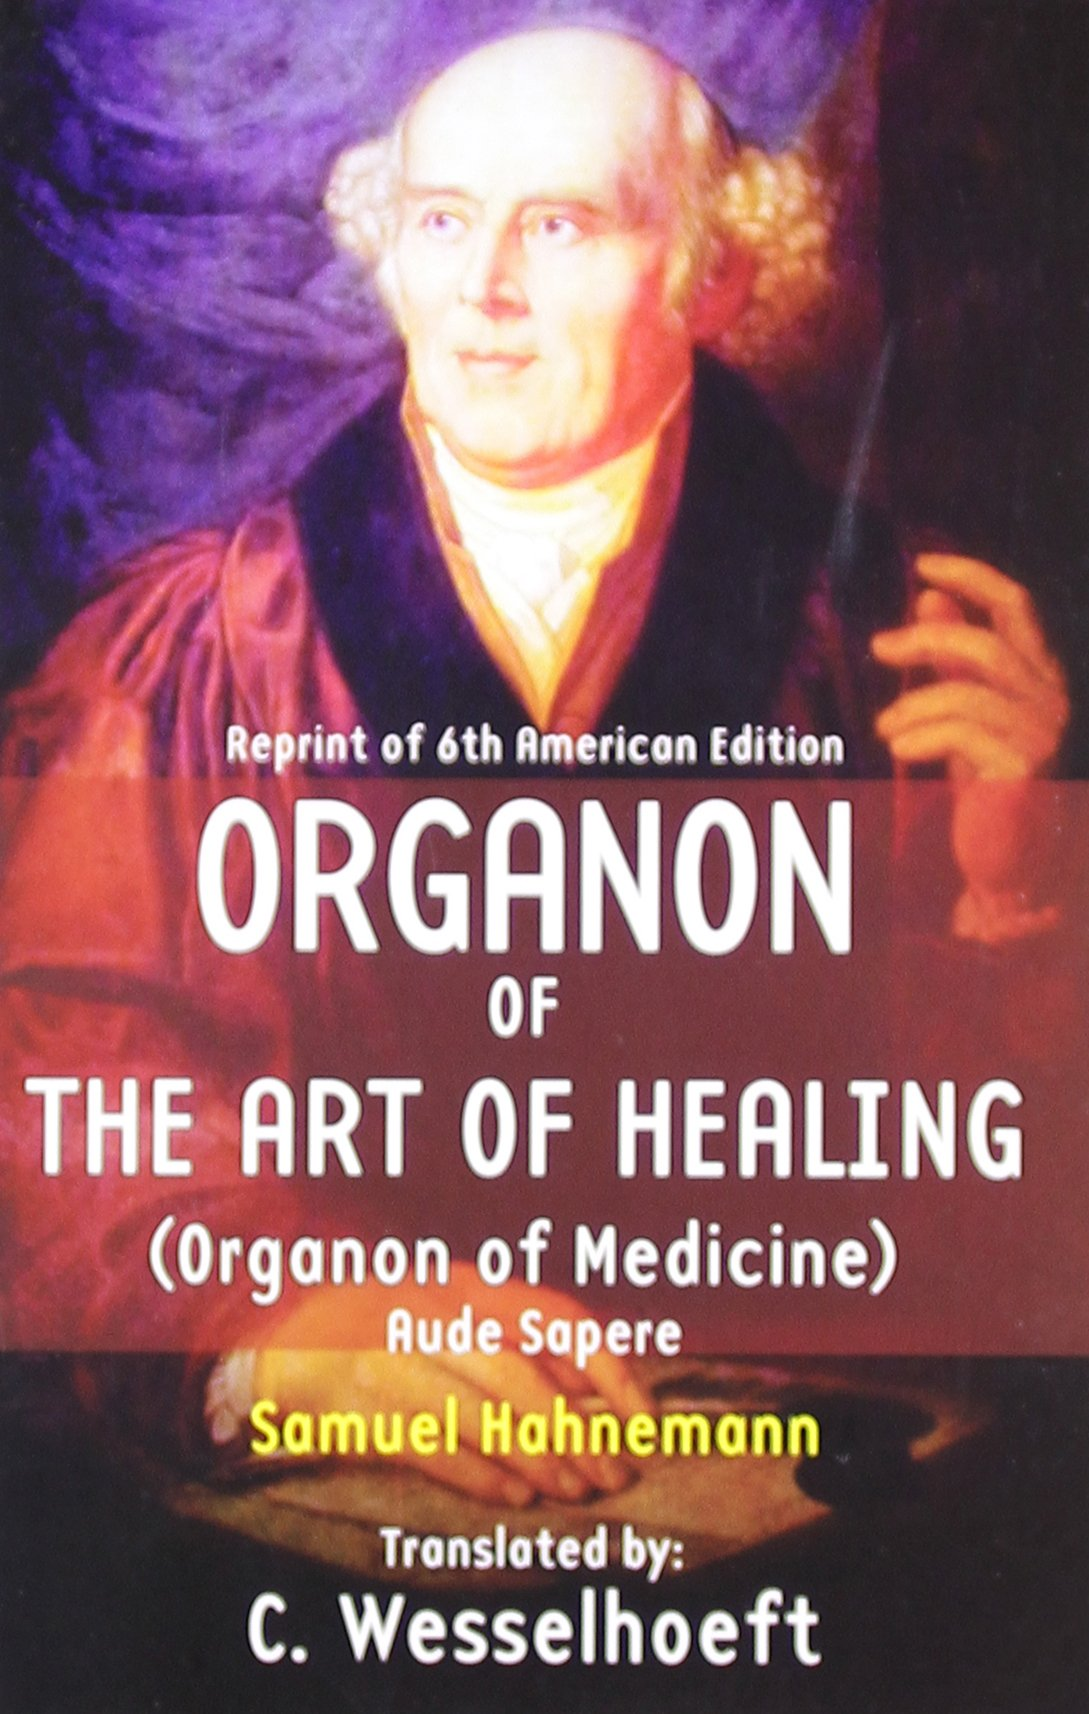 Organon of the healing art steroids for lung development in premature babies side effects